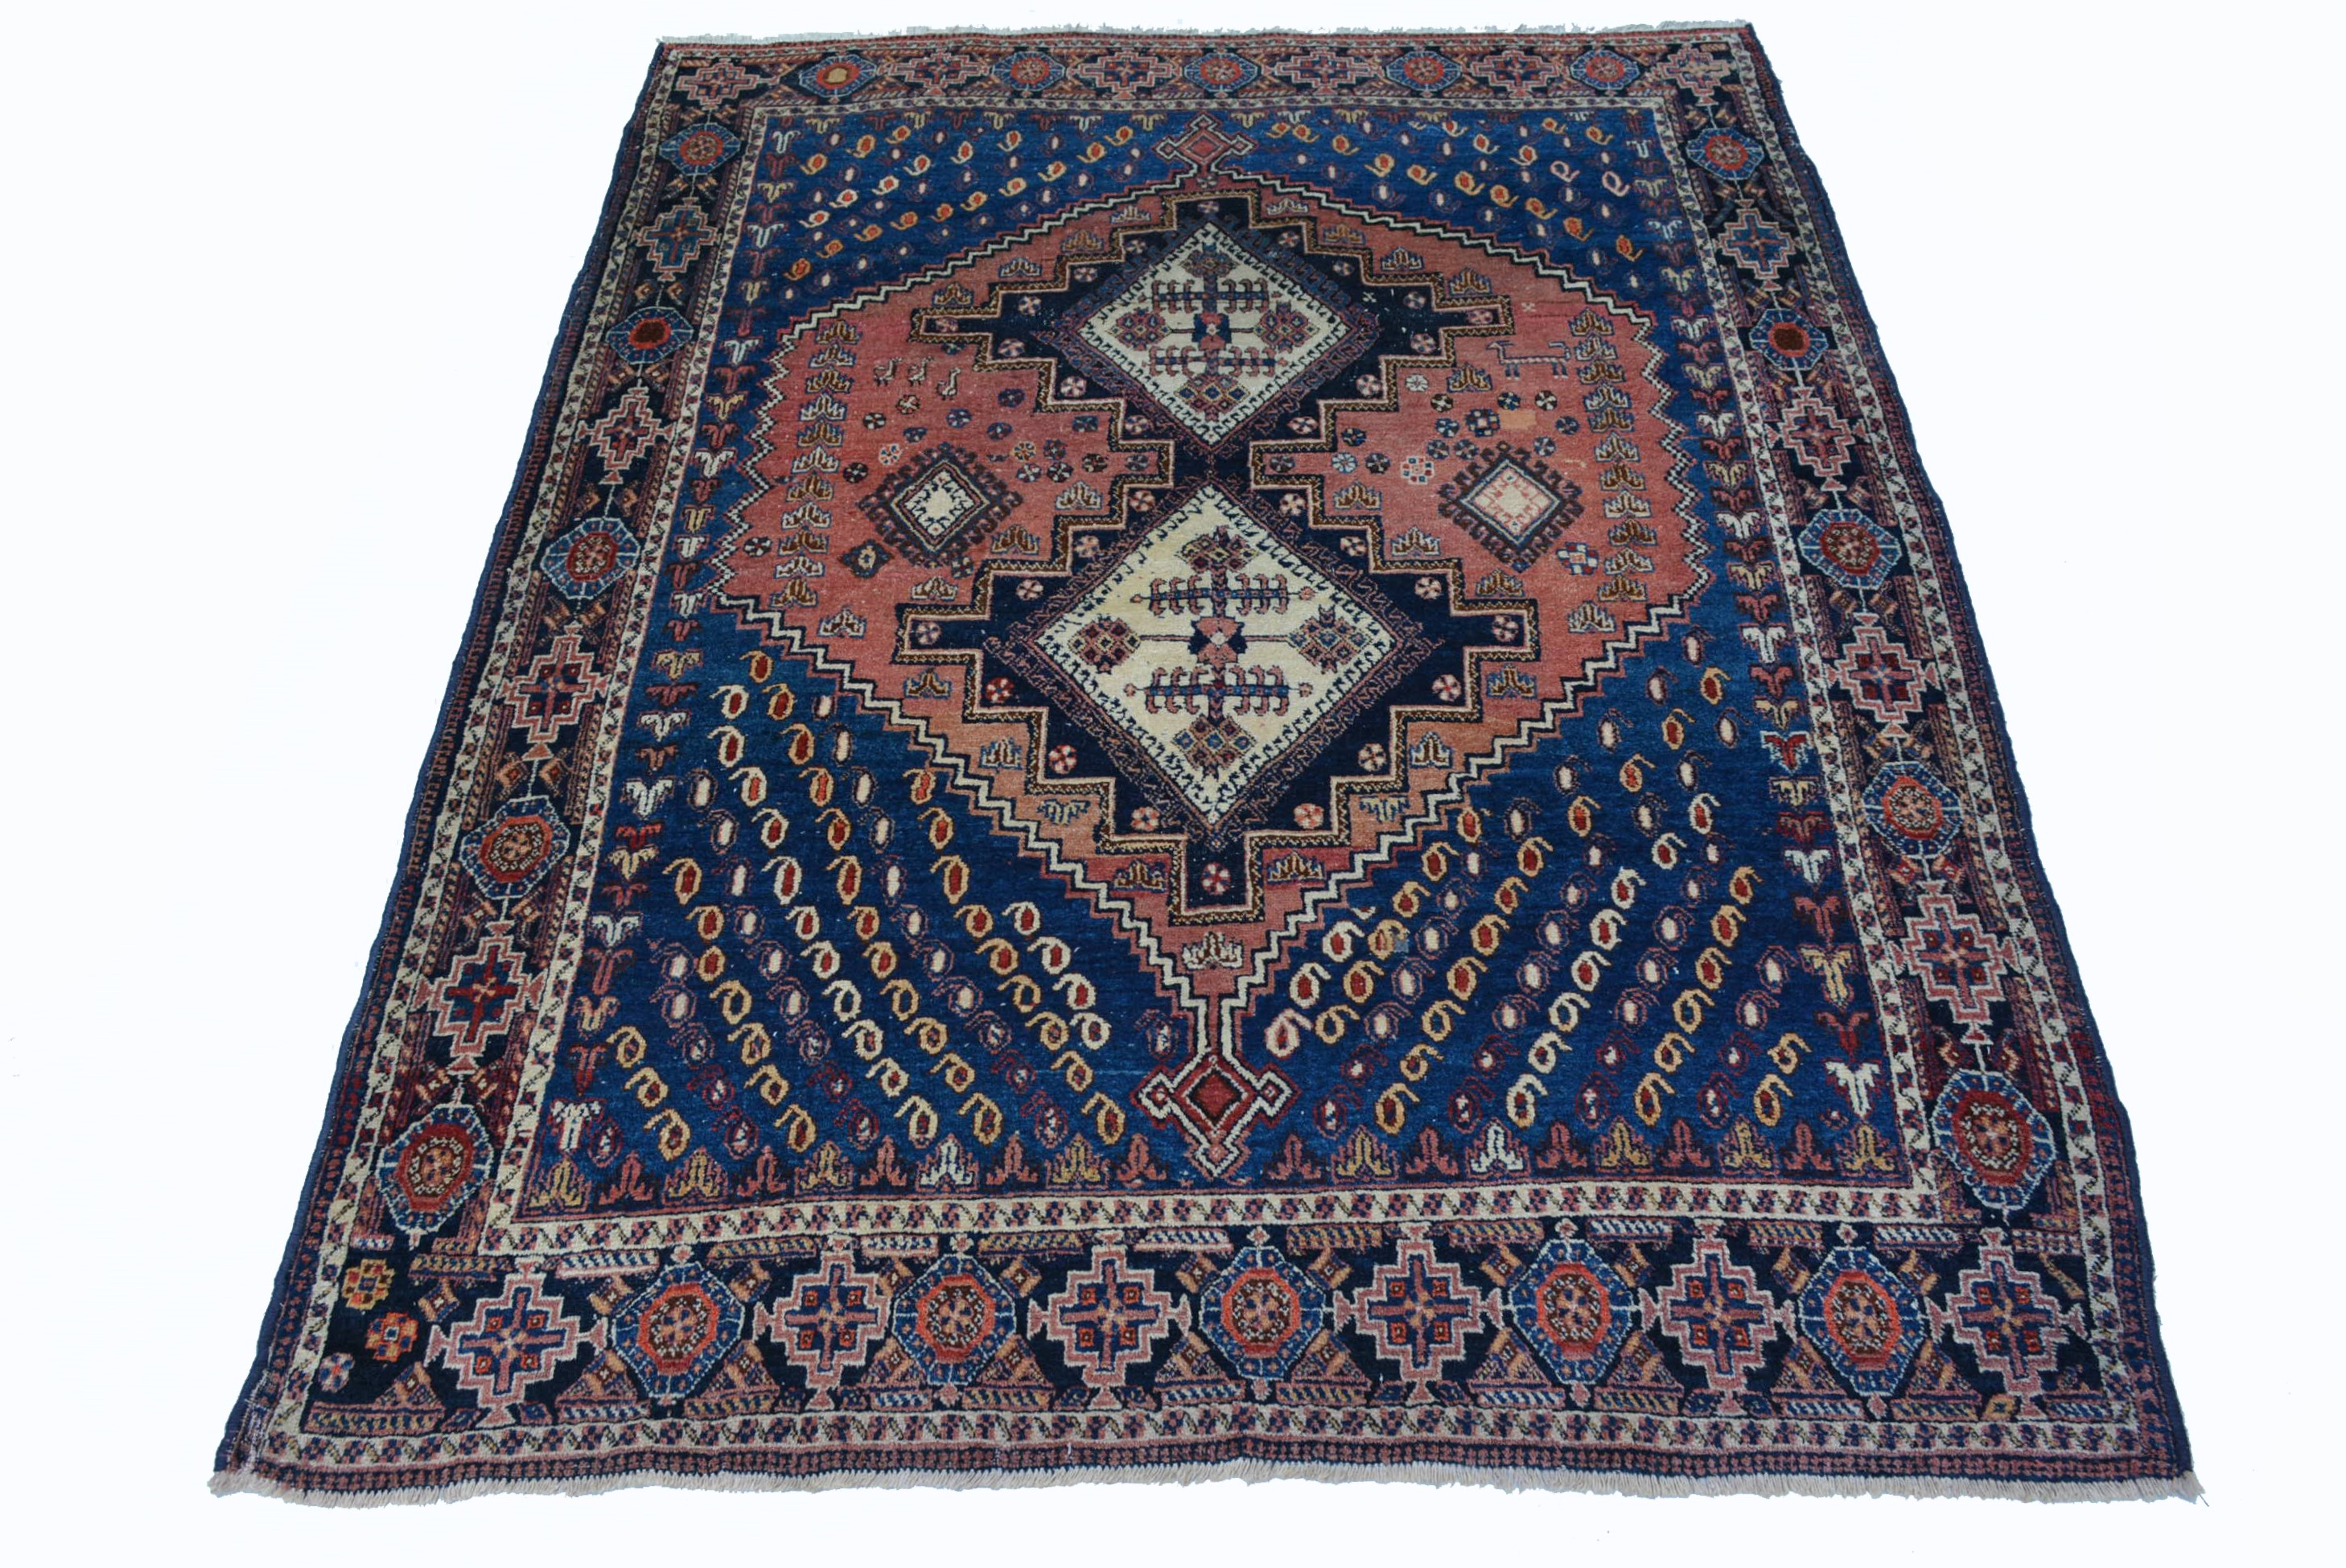 antik afshar orient teppich fein wolle 173x134 cm rug tappeto tapis alfombra ebay. Black Bedroom Furniture Sets. Home Design Ideas